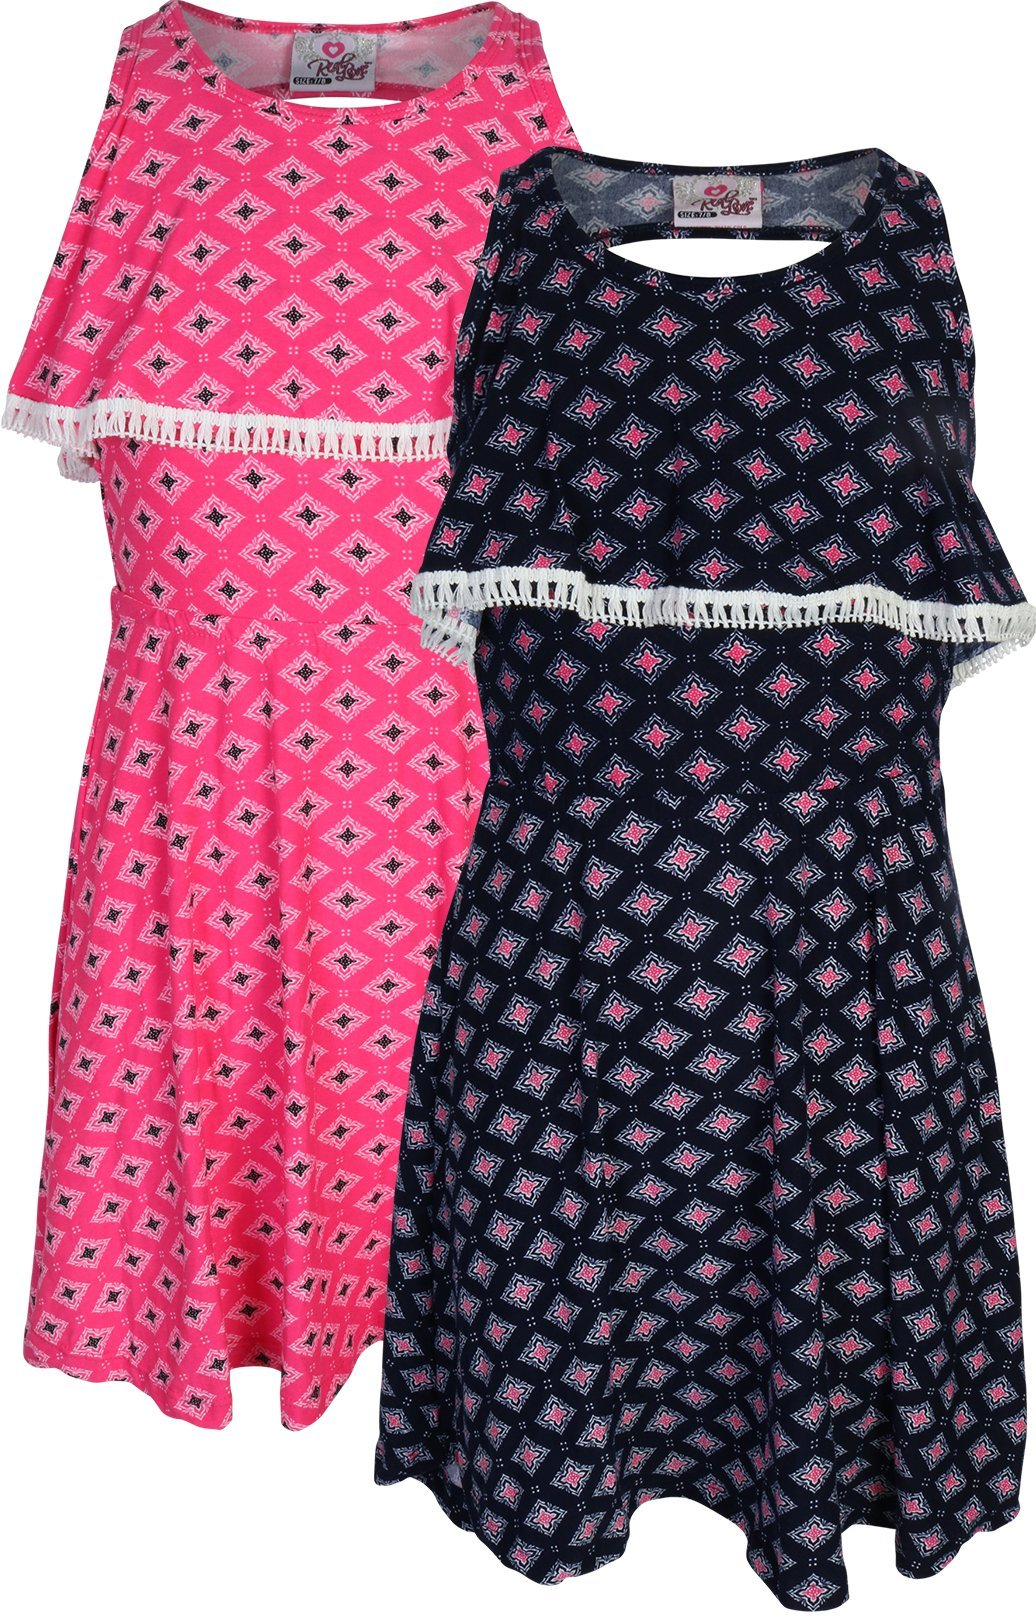 Real Love Girl's Printed Yummy Summer Dress (2 Pack), Diamond, Size 7/8'